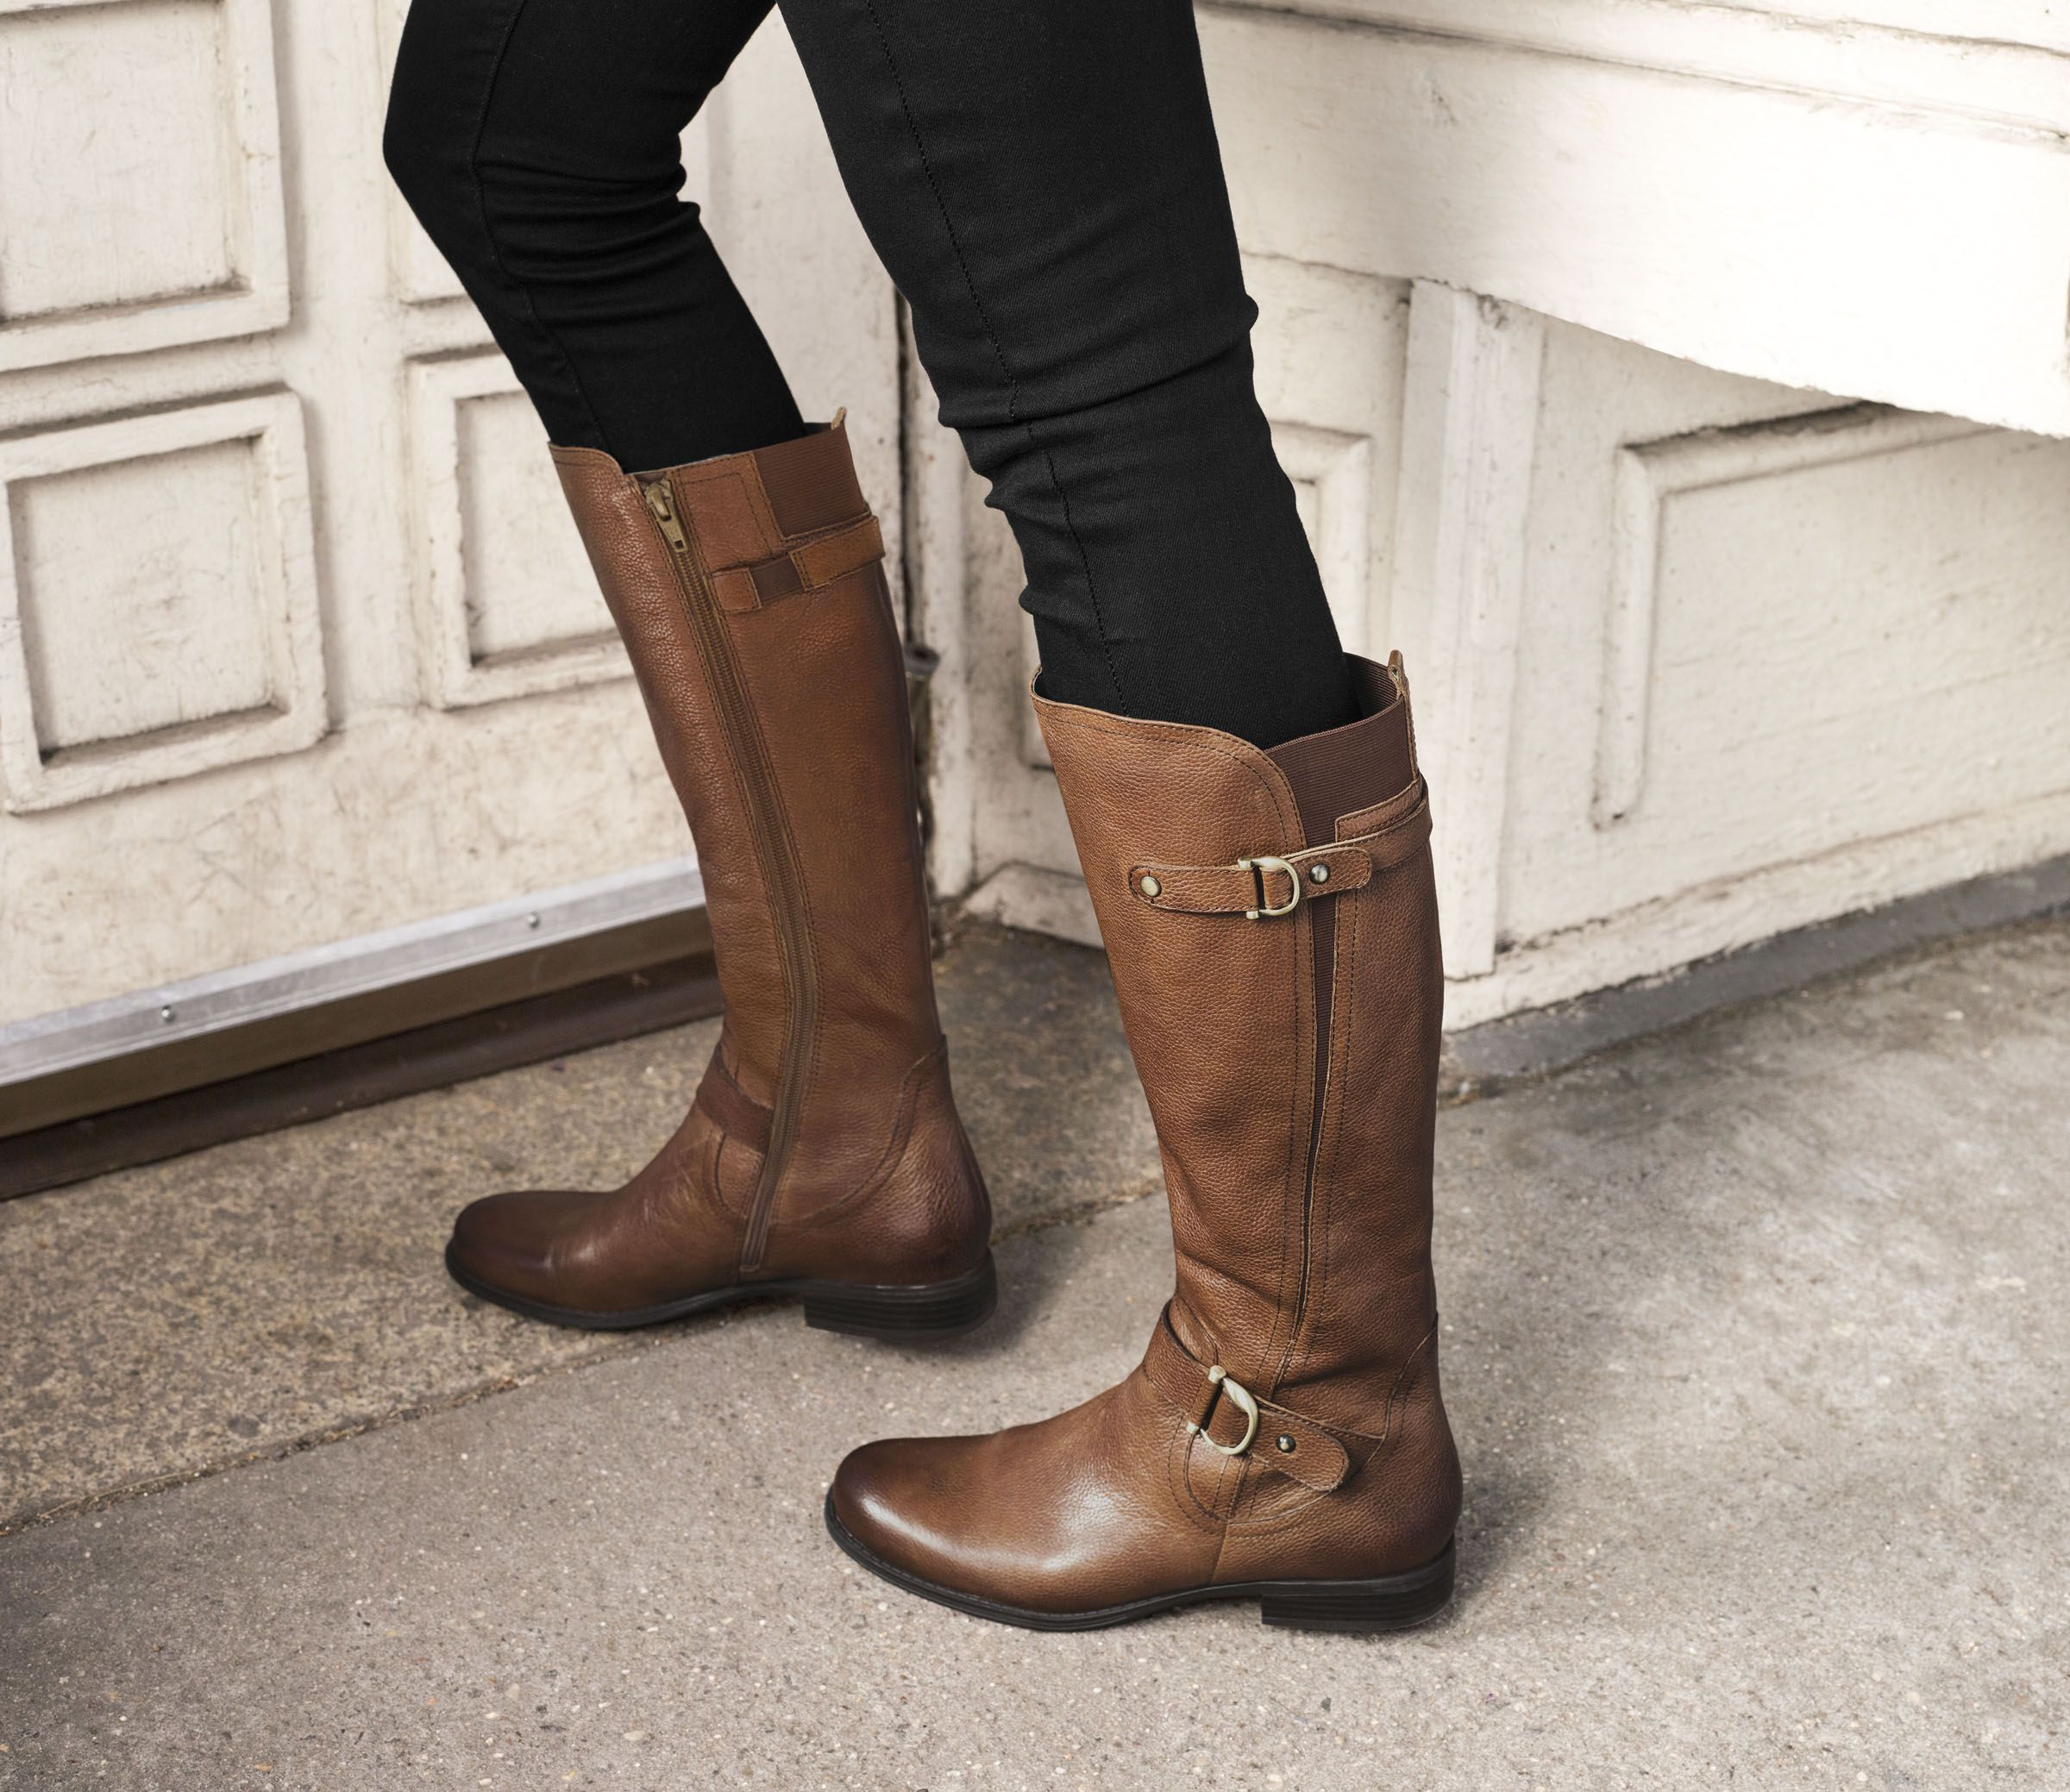 Naturalizer.com   Boots, Leather boots